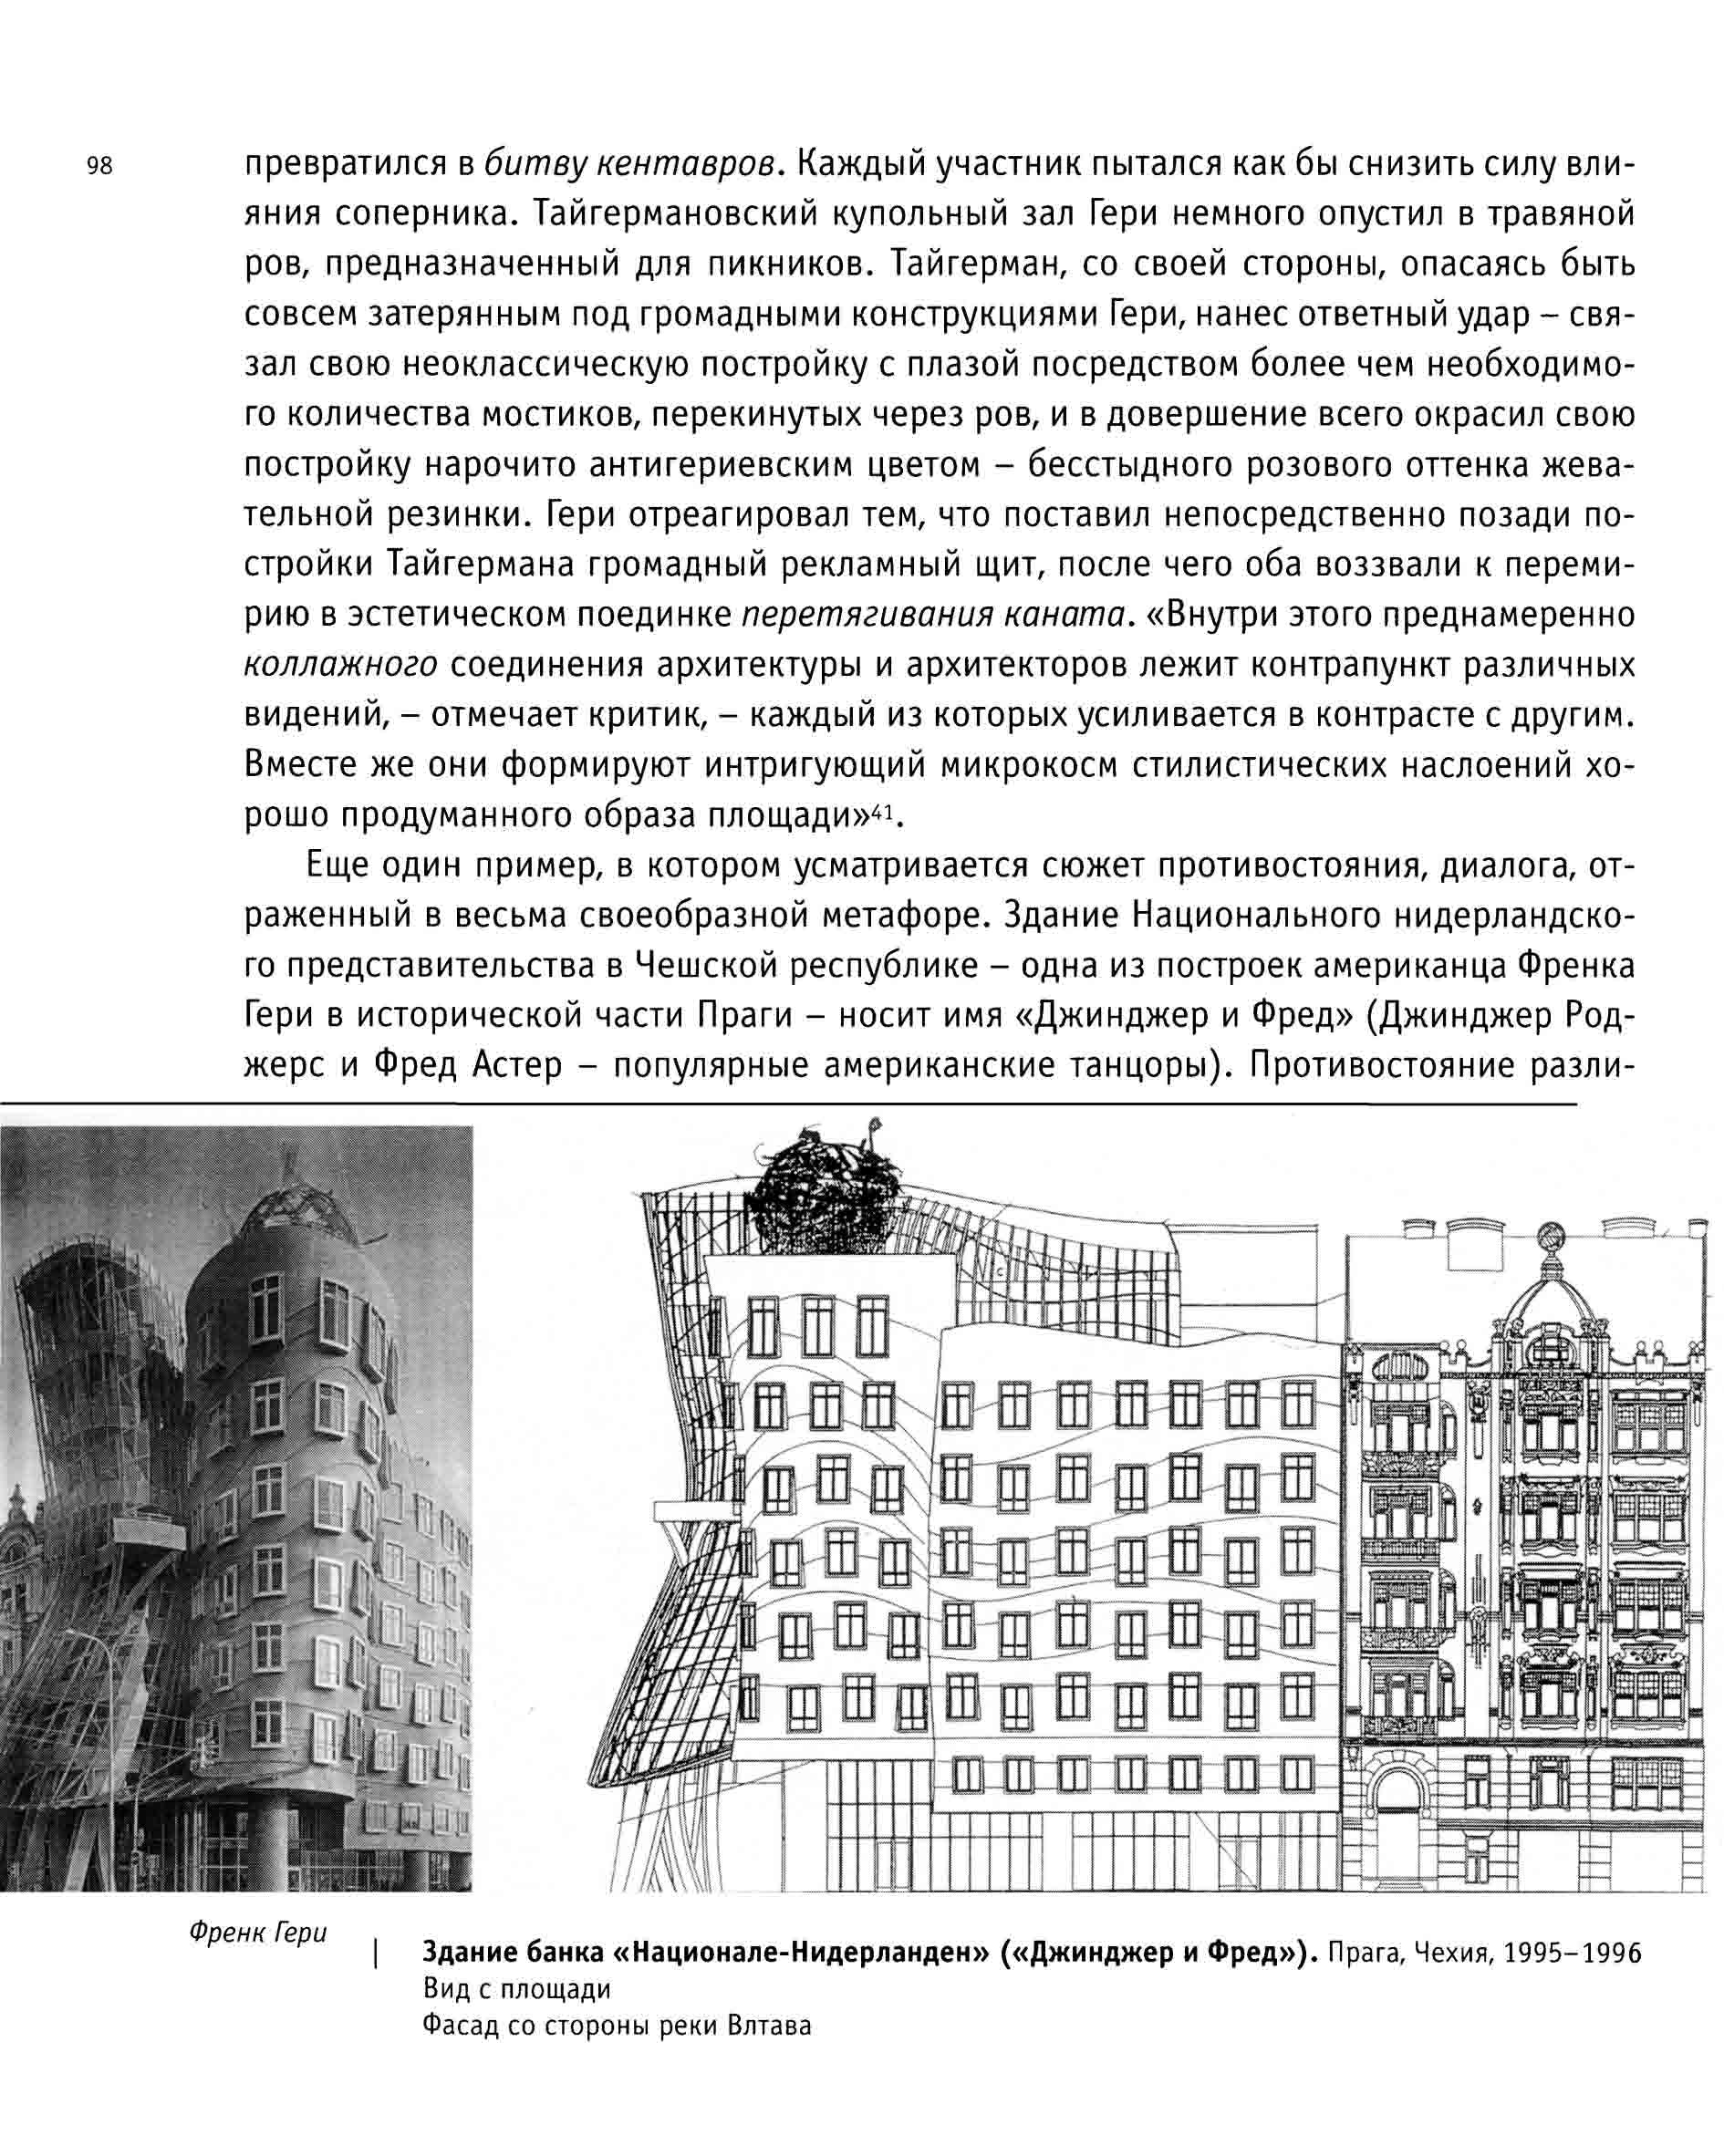 http://mealstest.bluelightbulb.com/ebook.php?q=ebook-case-studies-in-system-of-systems-enterprise-systems-and-complex-systems-engineering-2014.html